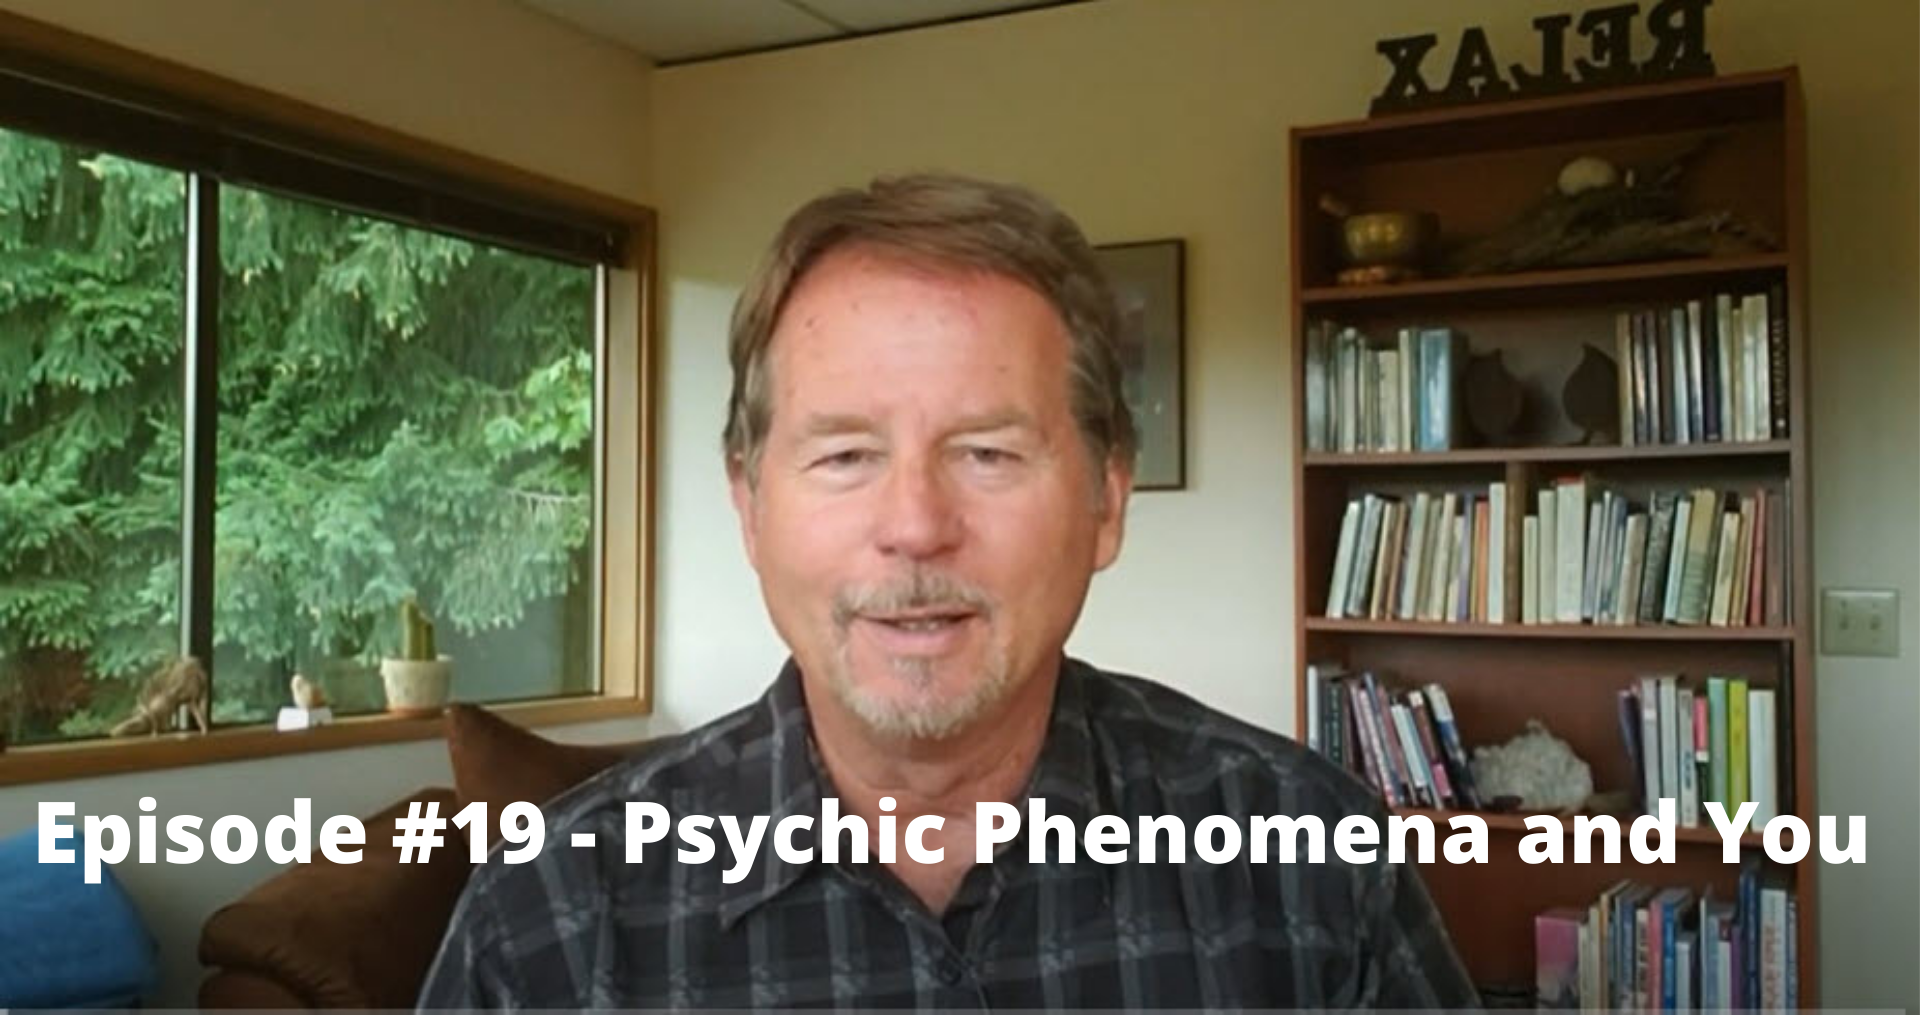 Episode #19 - Psychic Phenomena and You.